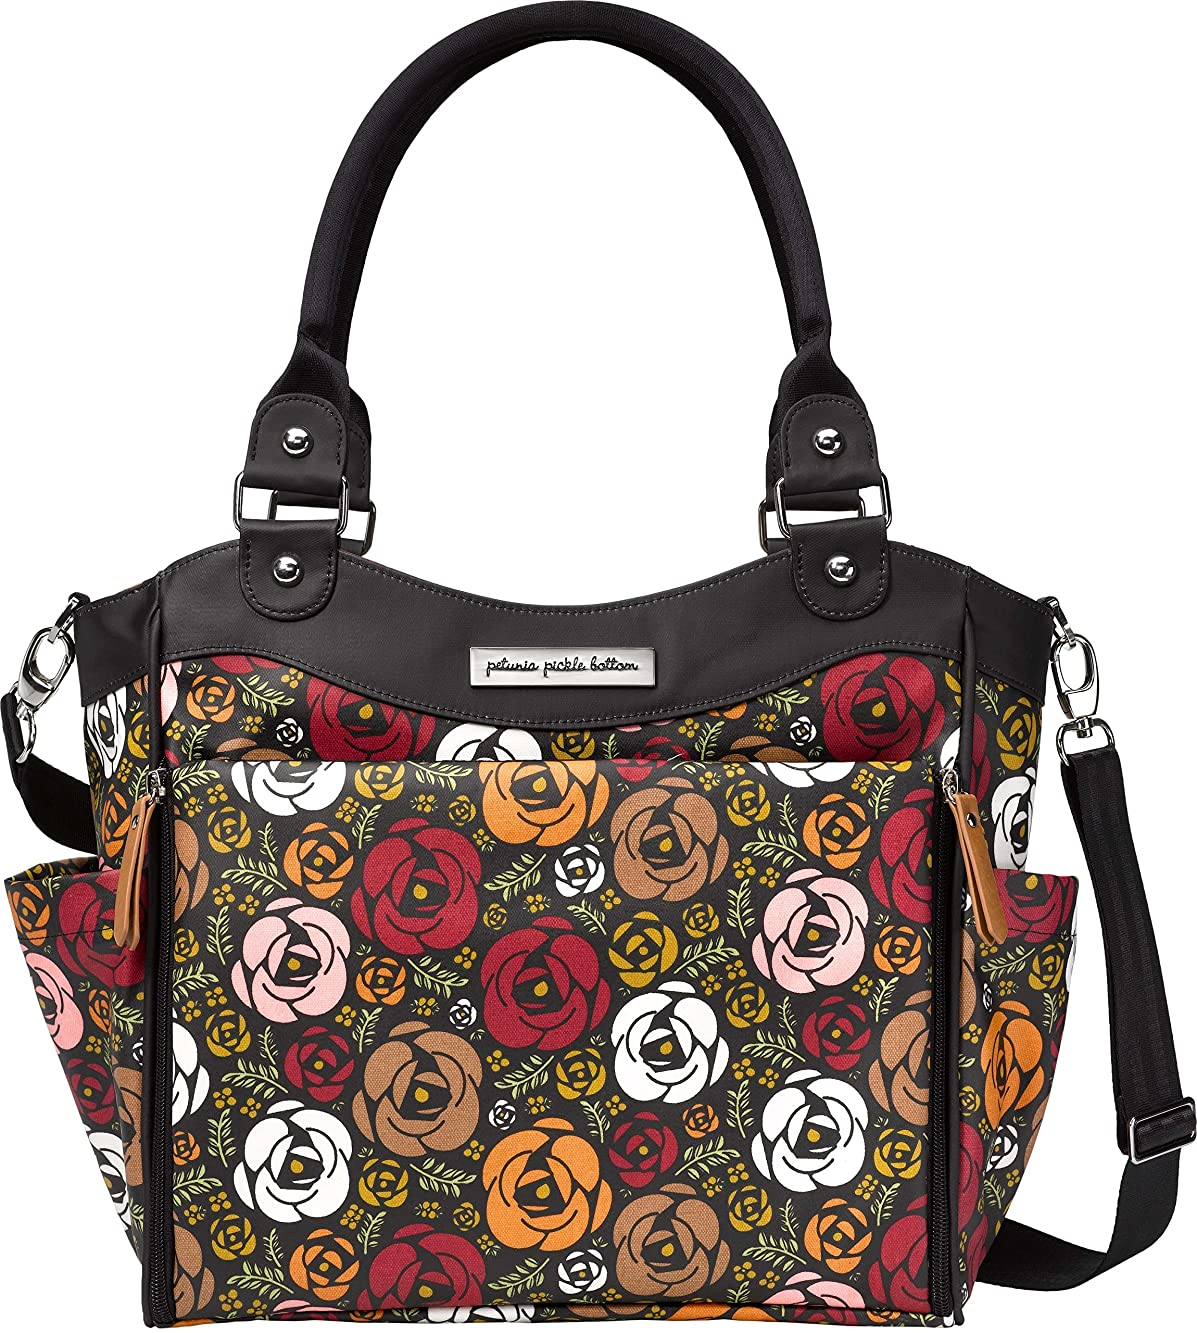 暴行アラブ横たわるPetunia Pickle Bottom City Carryall Diaper Bag in Gardens of Gillingham by Petunia Pickle Bottom